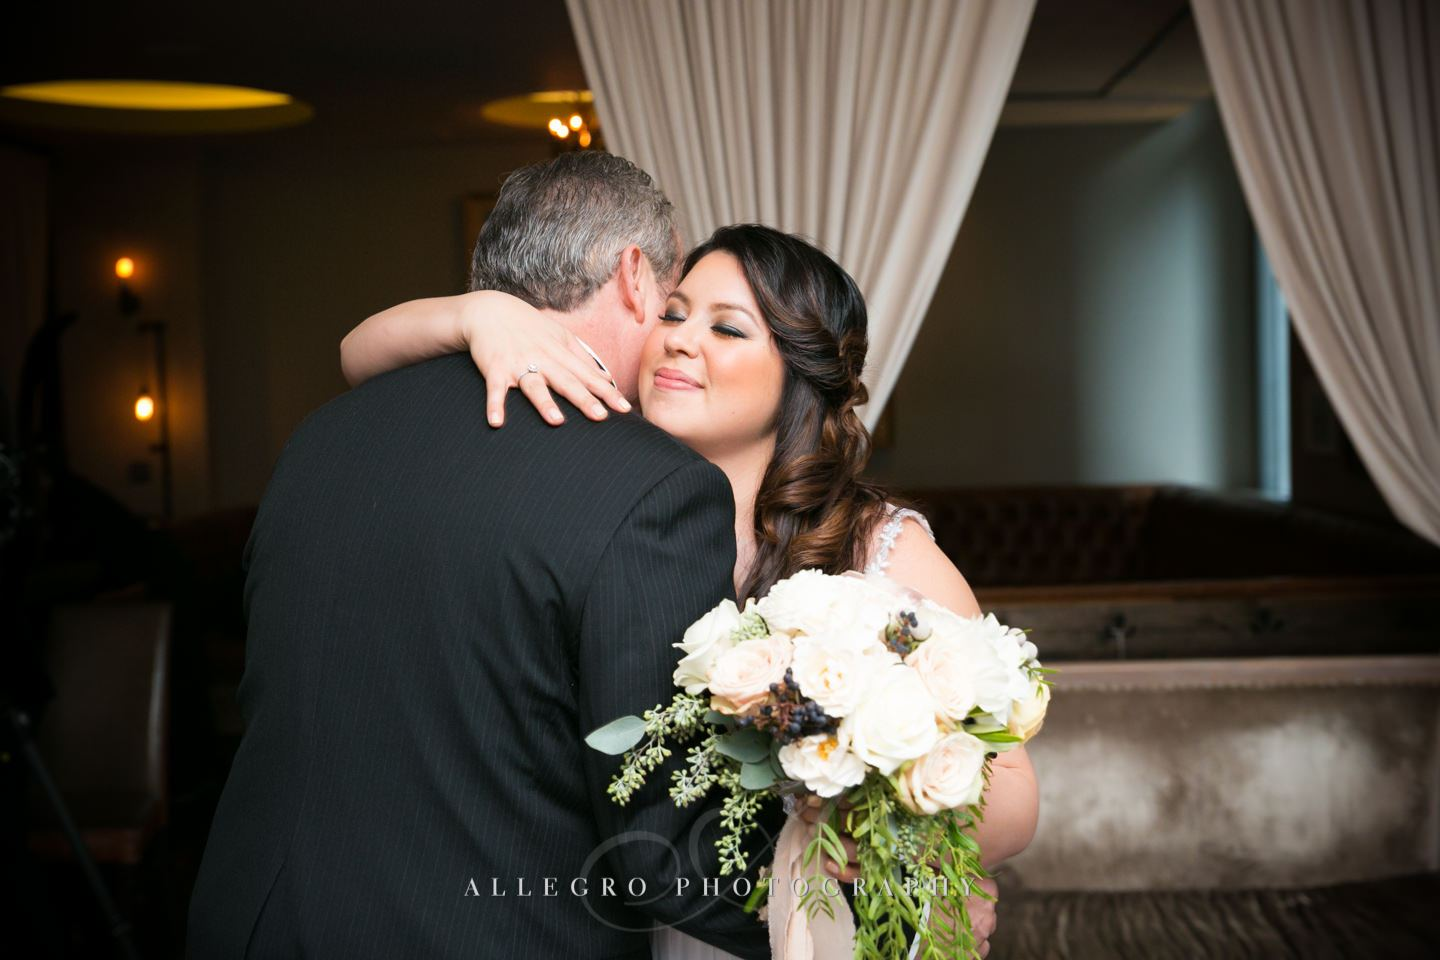 a hug from dad  -photo by Allegro Photography